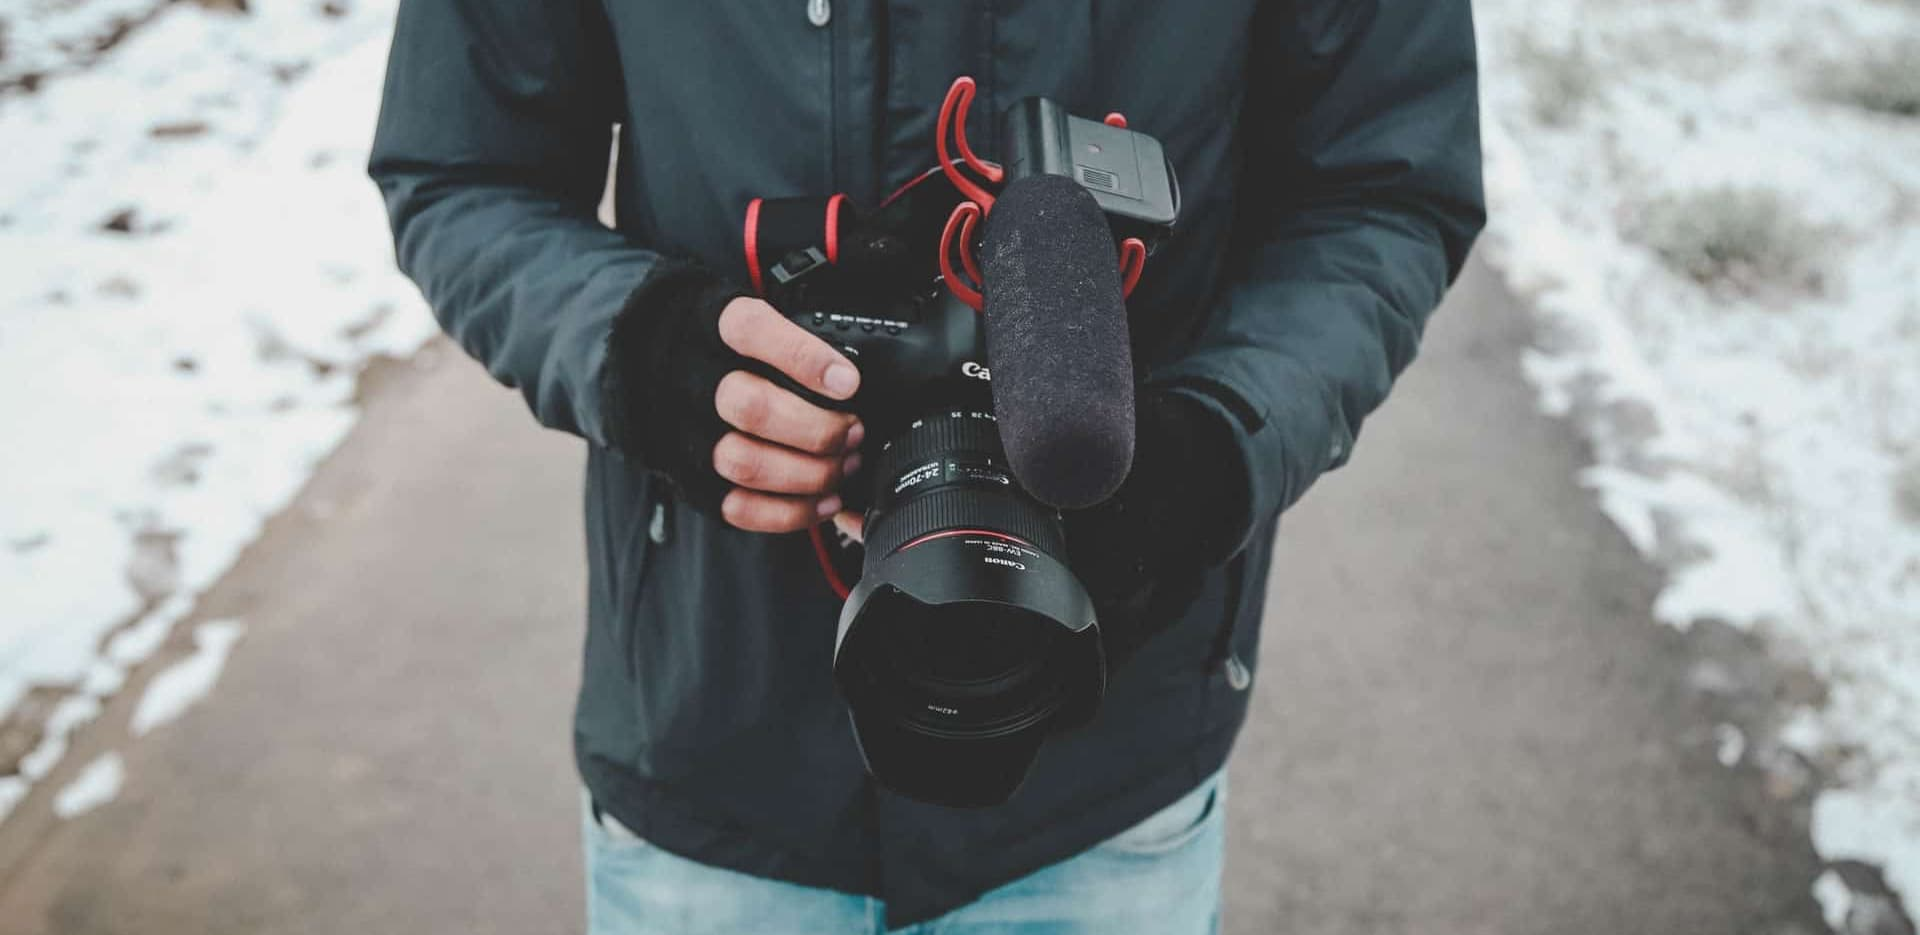 Best DSLR For Video? Top 7 Cameras For Filmmaking (August 2019)